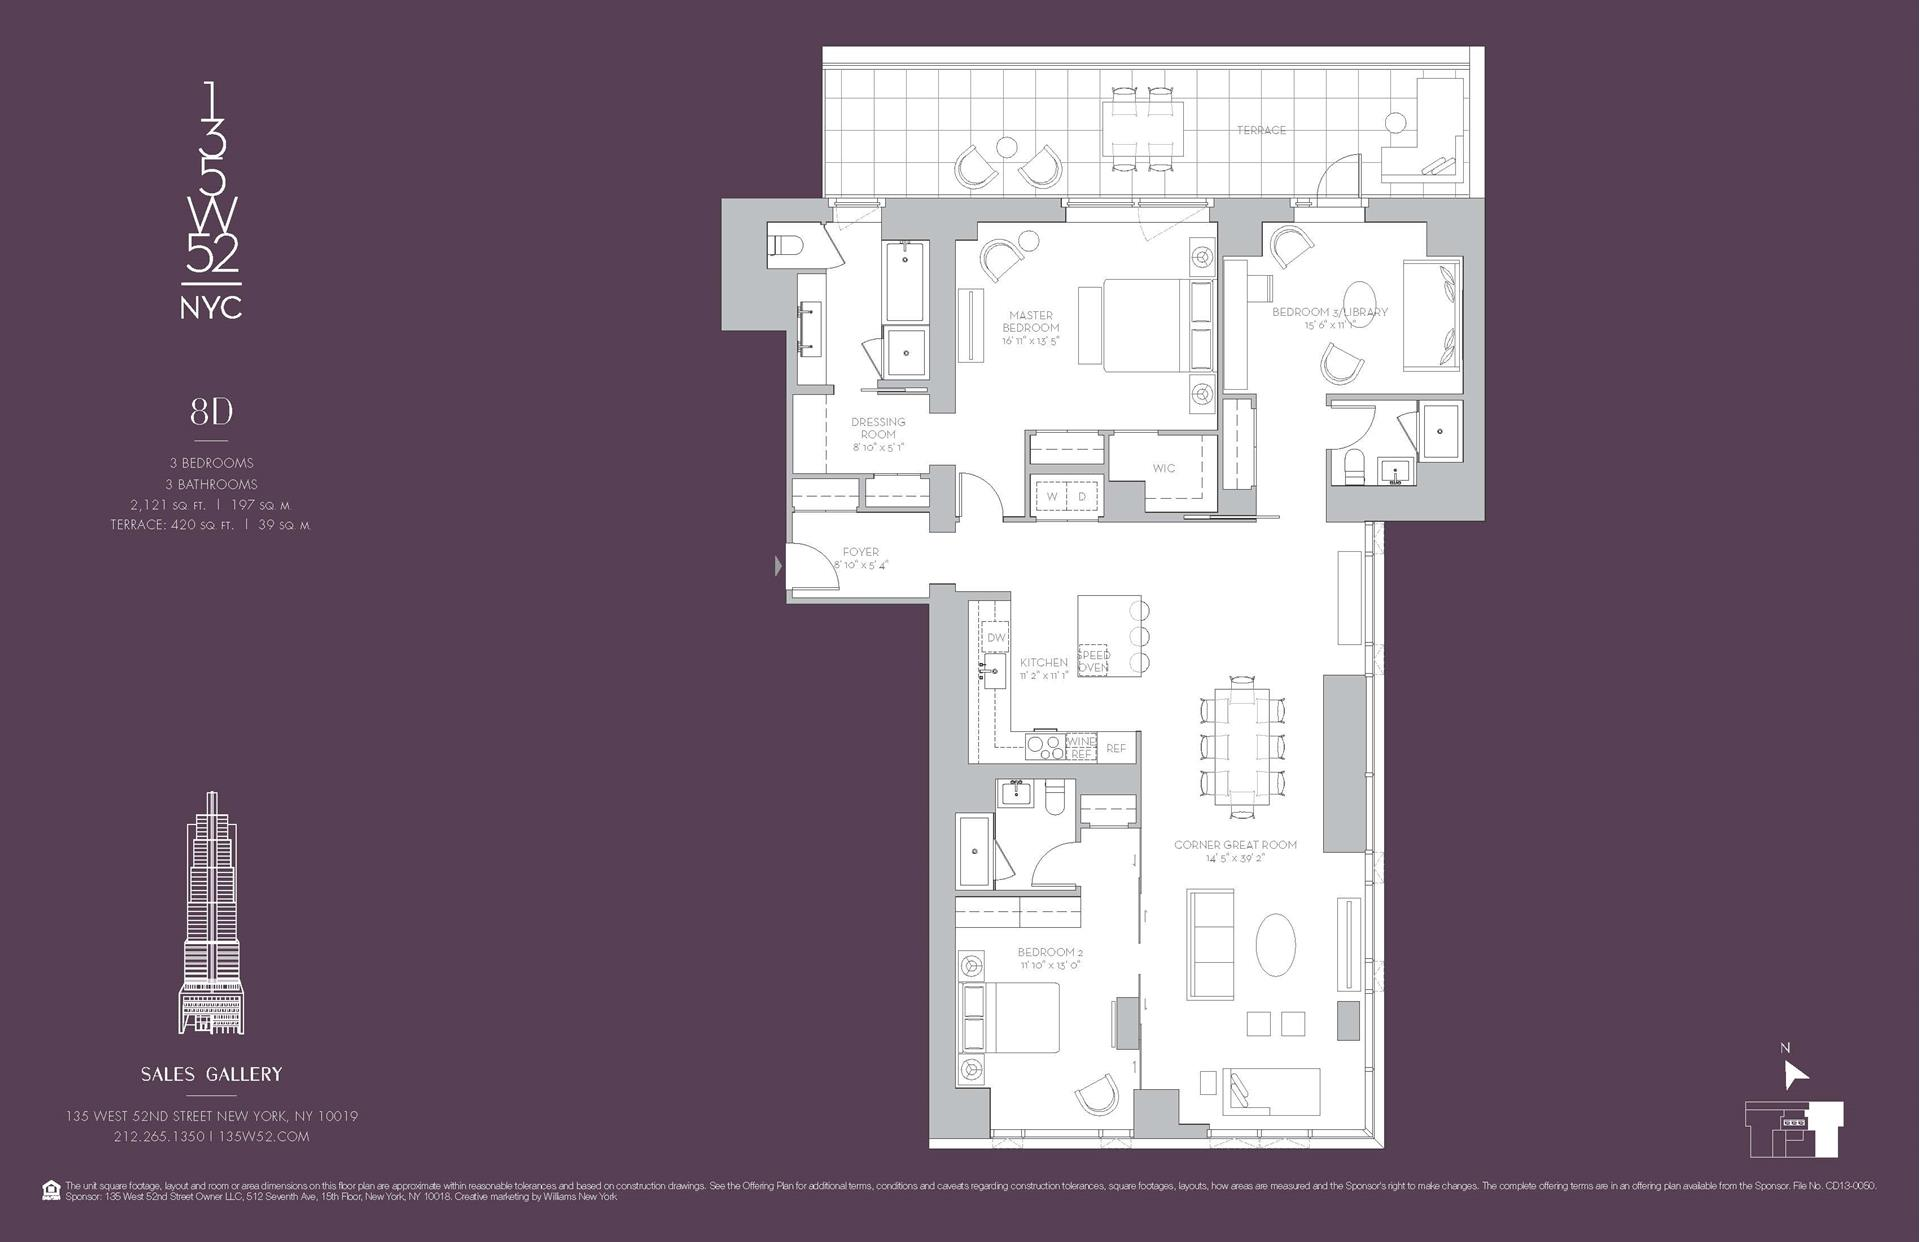 Floor plan of 135 West 52nd St, 8D - Midtown, New York